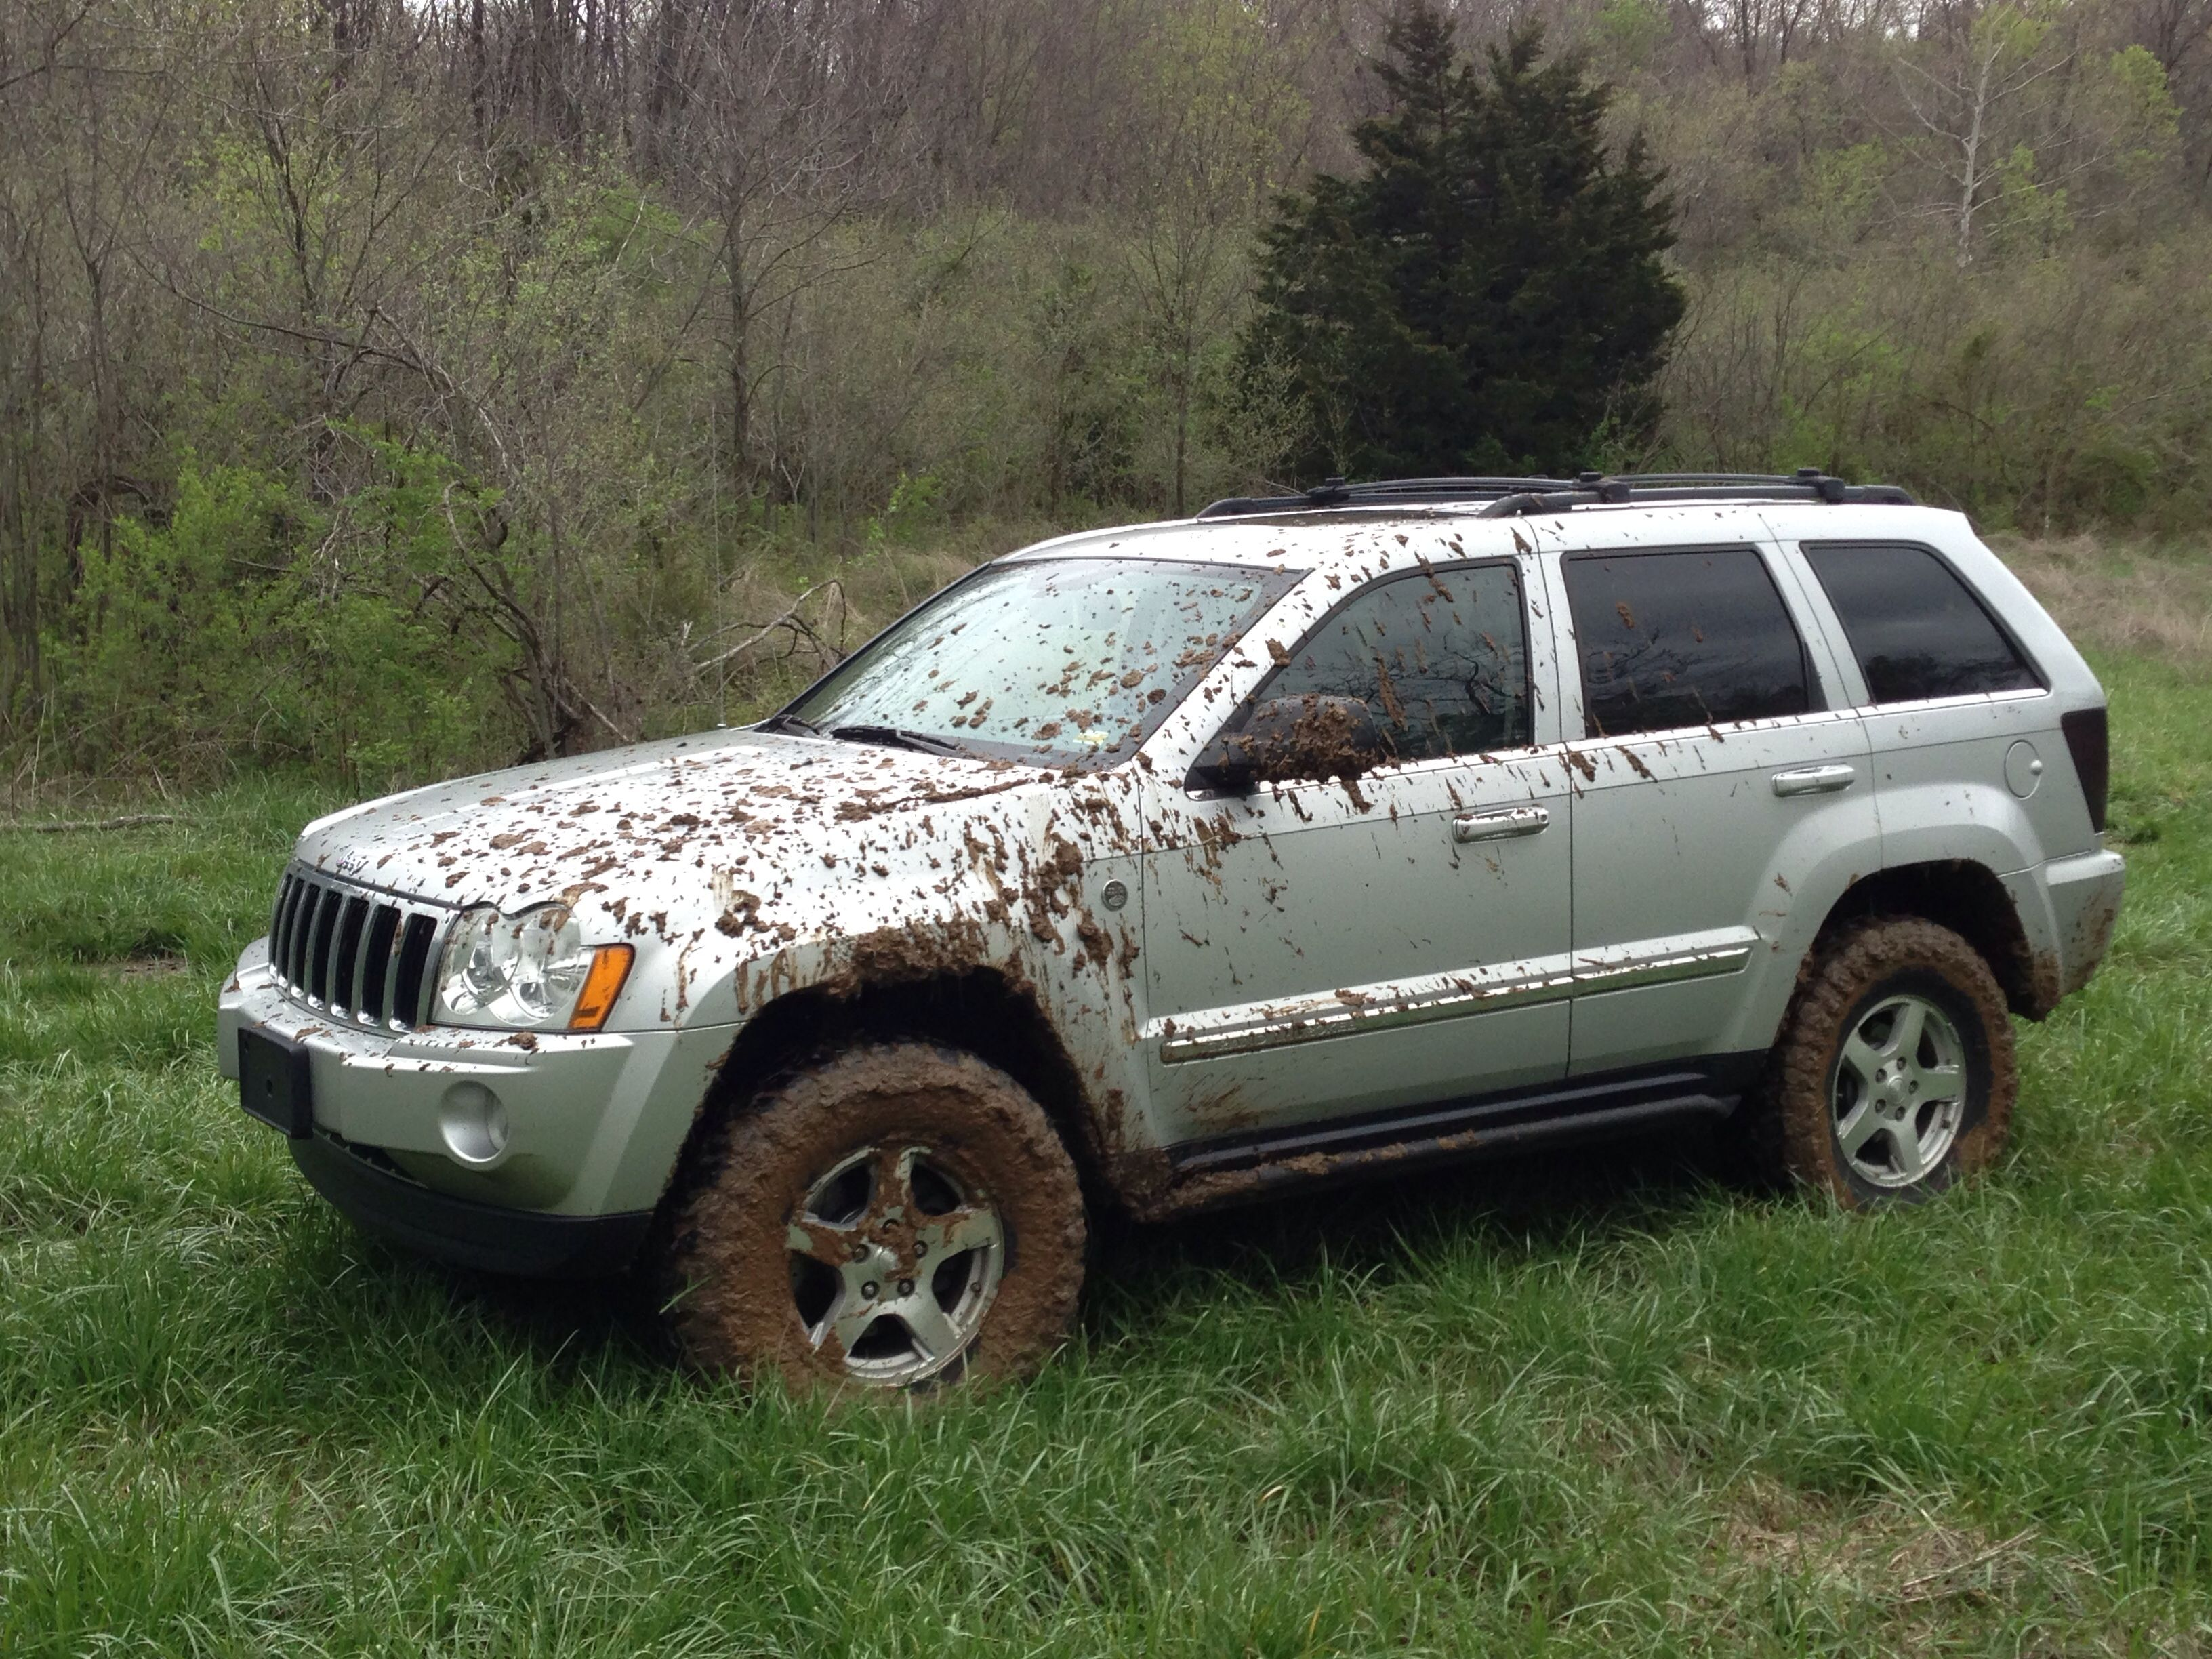 05 Grand Cherokee 4 Lift 33 Toyo Tires 5 7 Hemi Jeep Wk Jeep